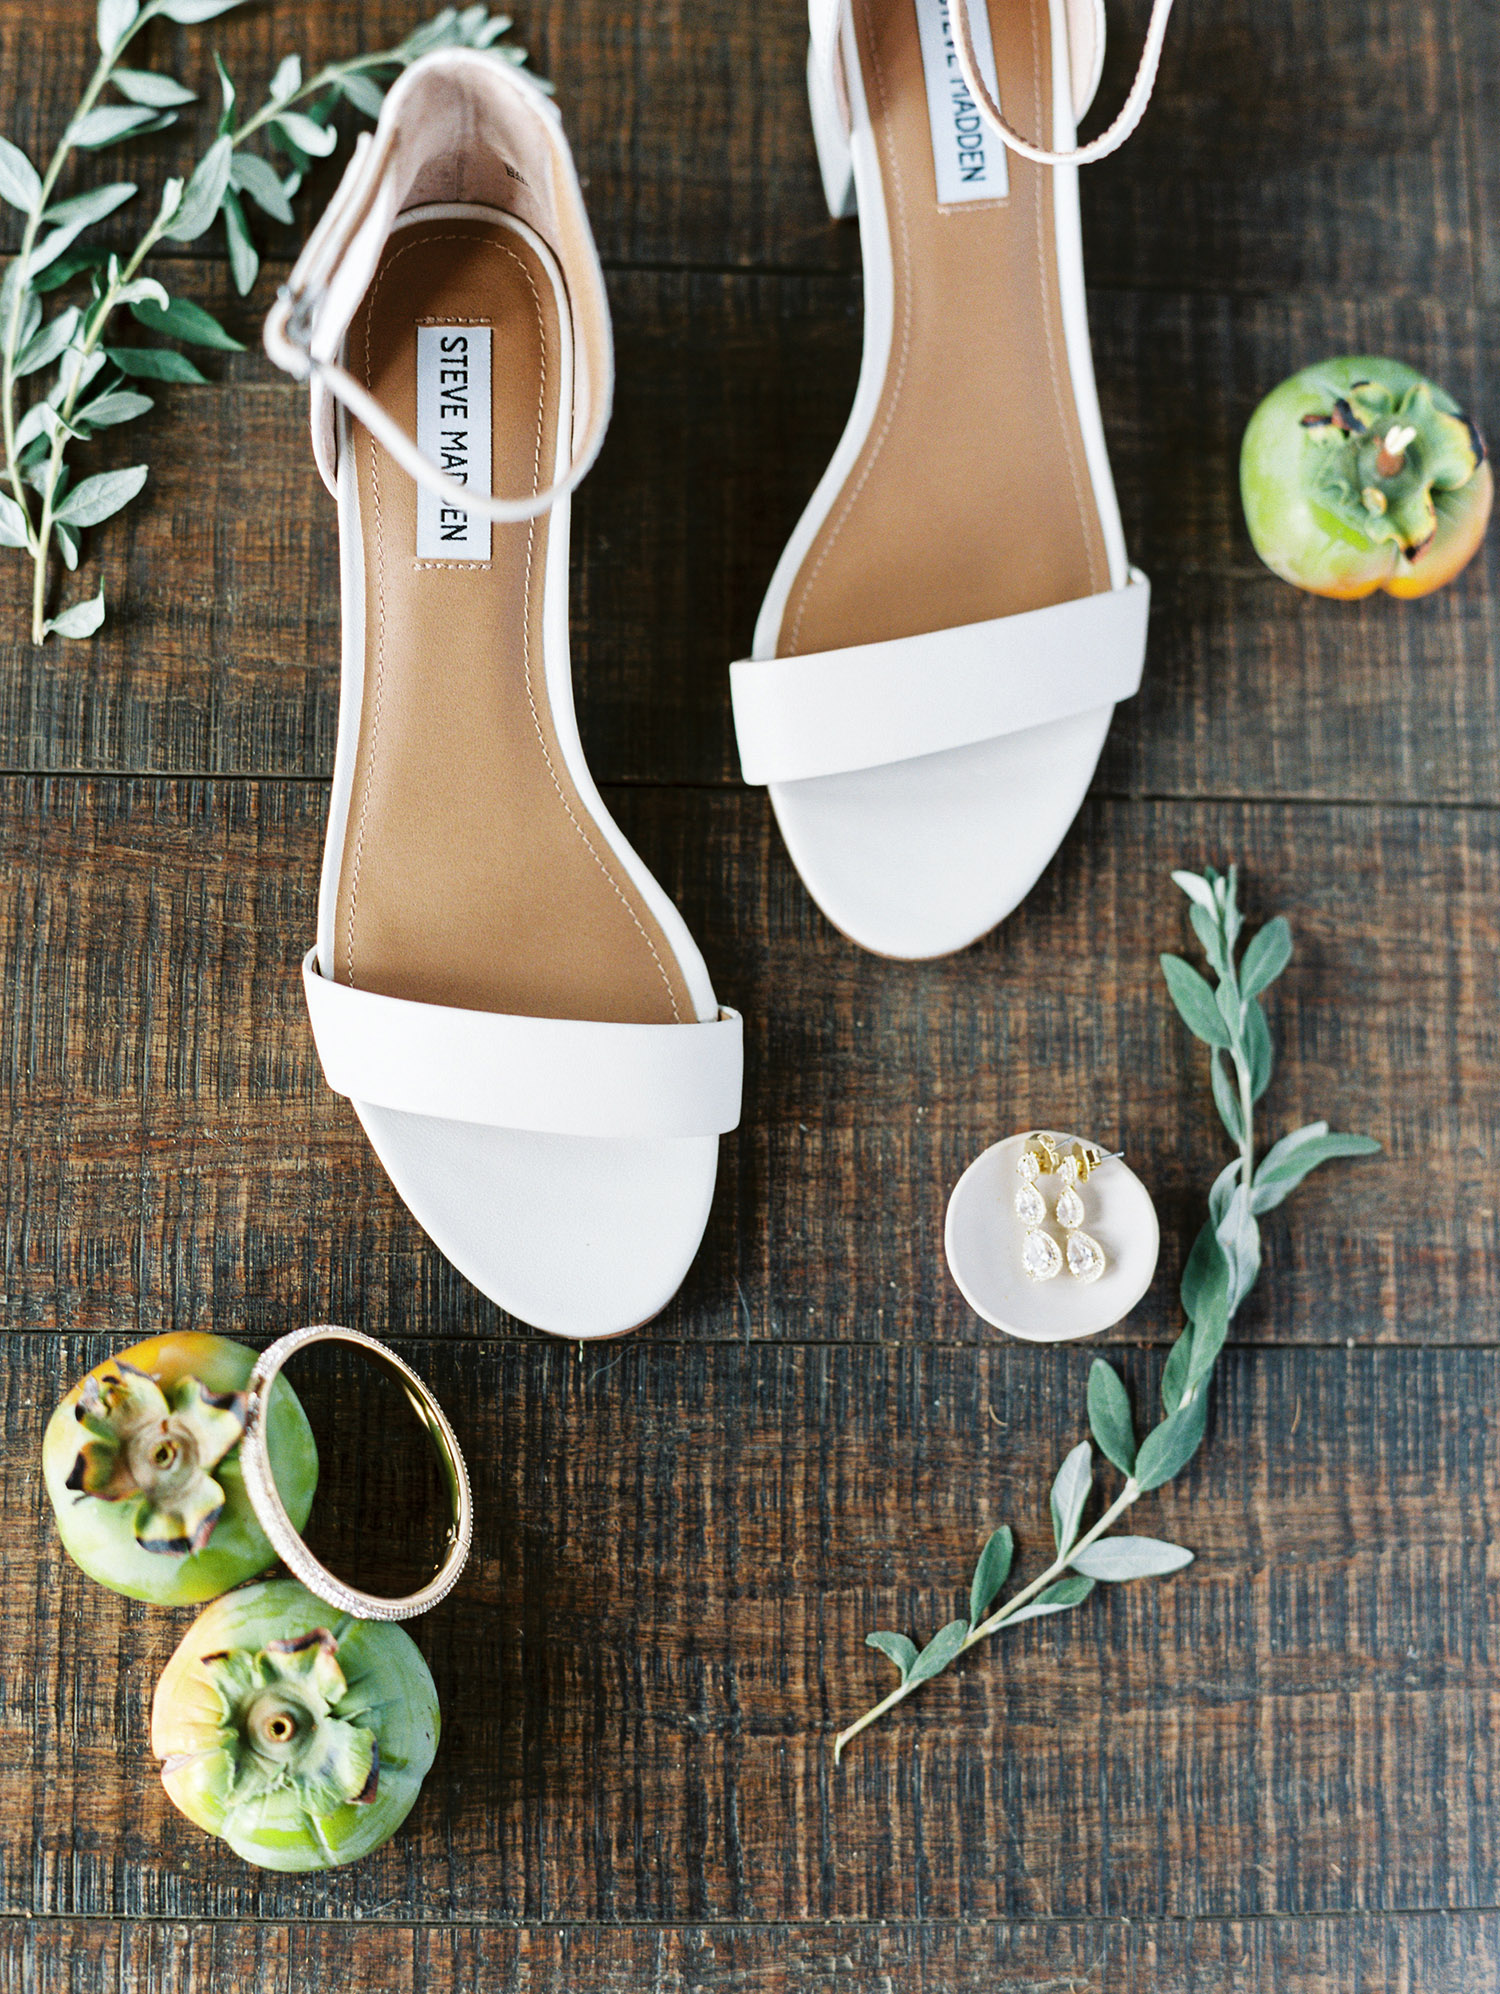 christina ken wedding accessories shoes and jewelry